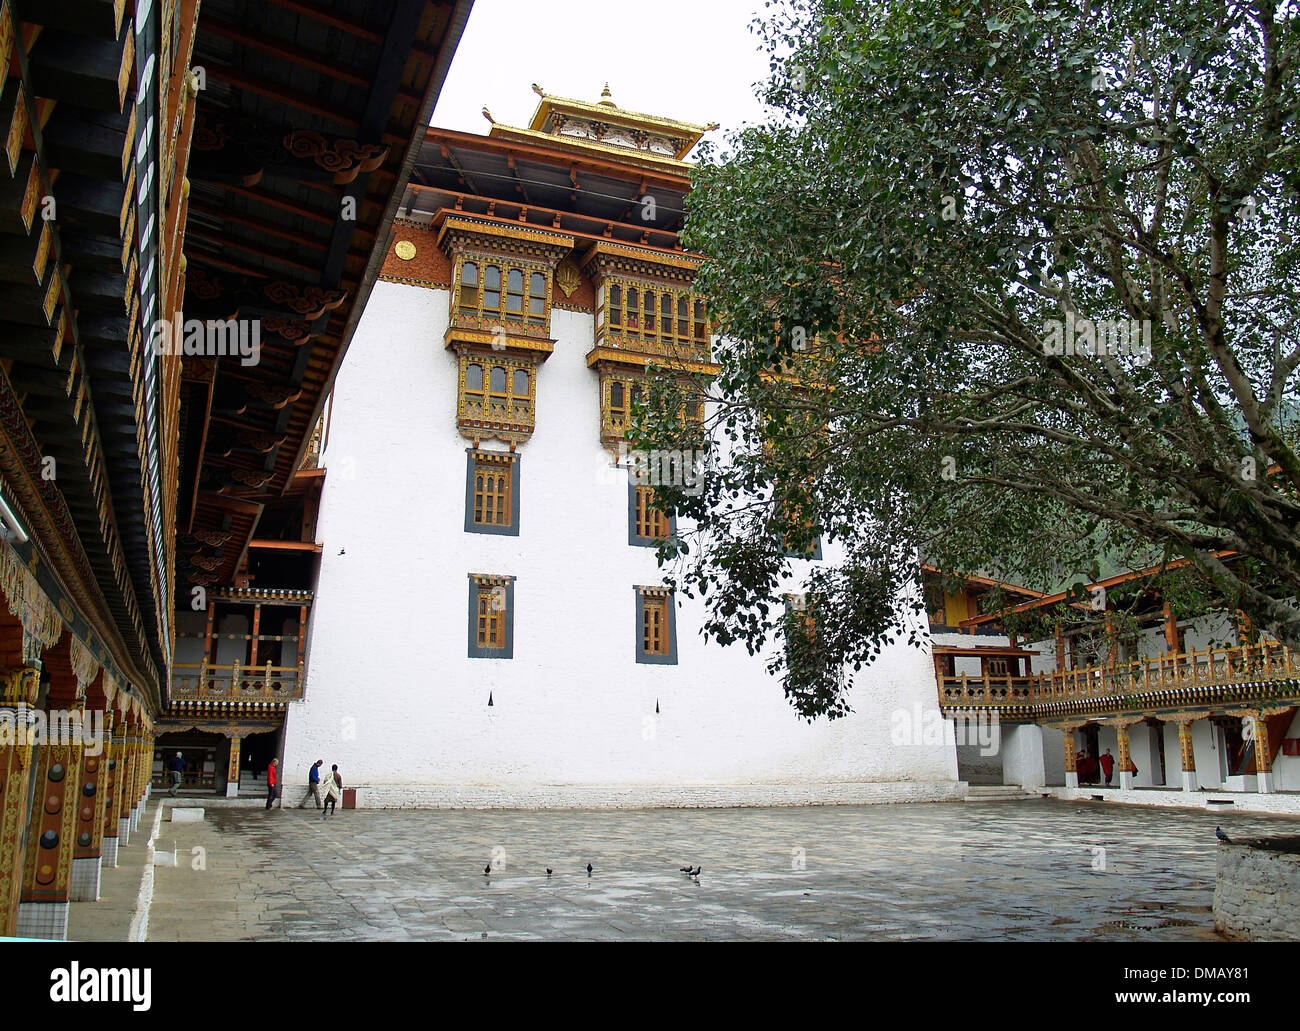 The interior courtyard of the Punakha Dzong,Bhutan - Stock Image